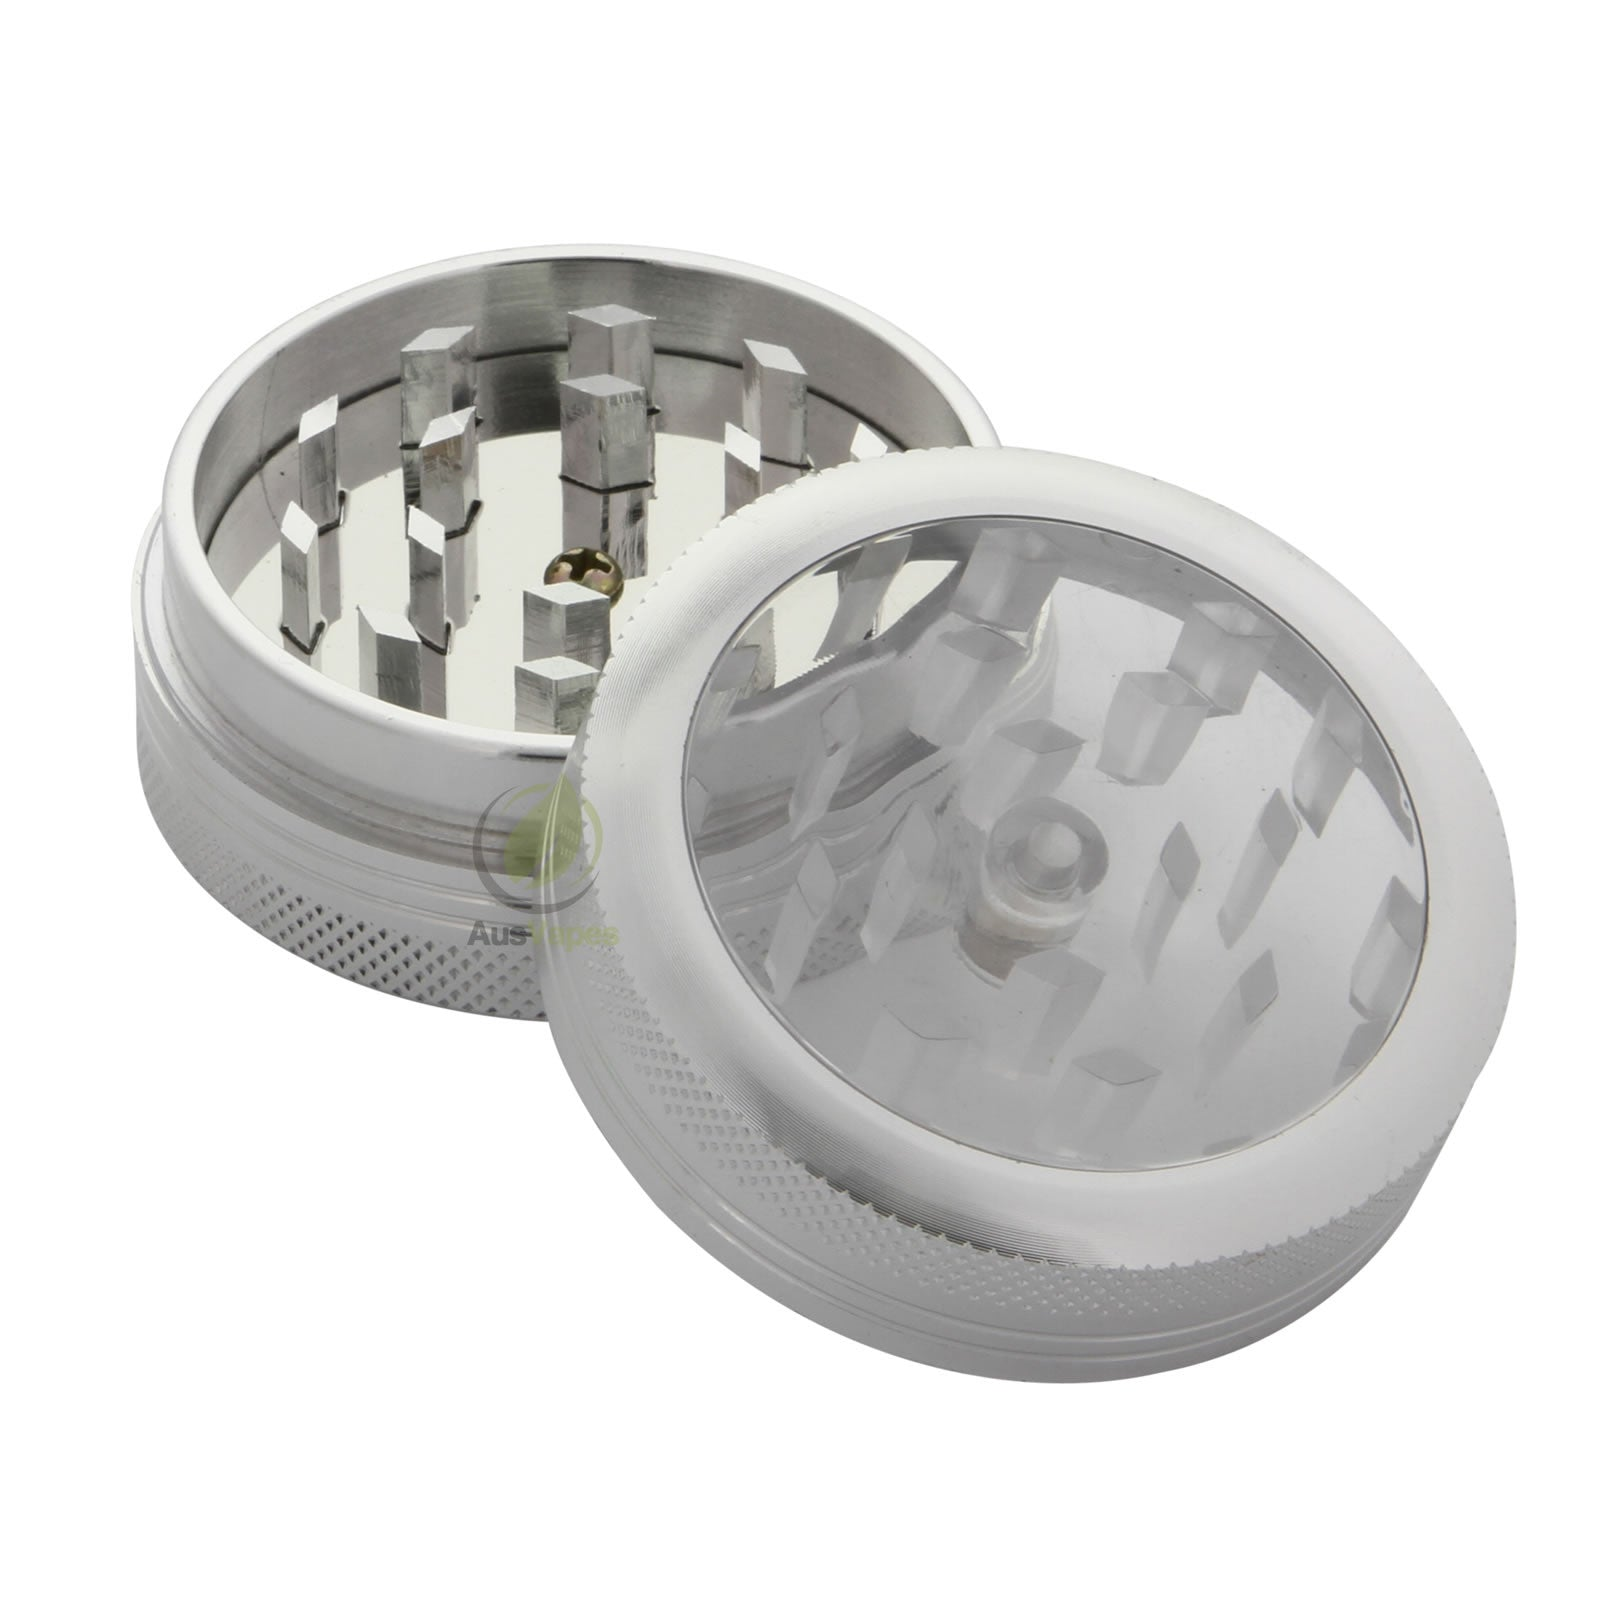 Silver Aluminium Clear Top Grinder 50mm - 2 pc.